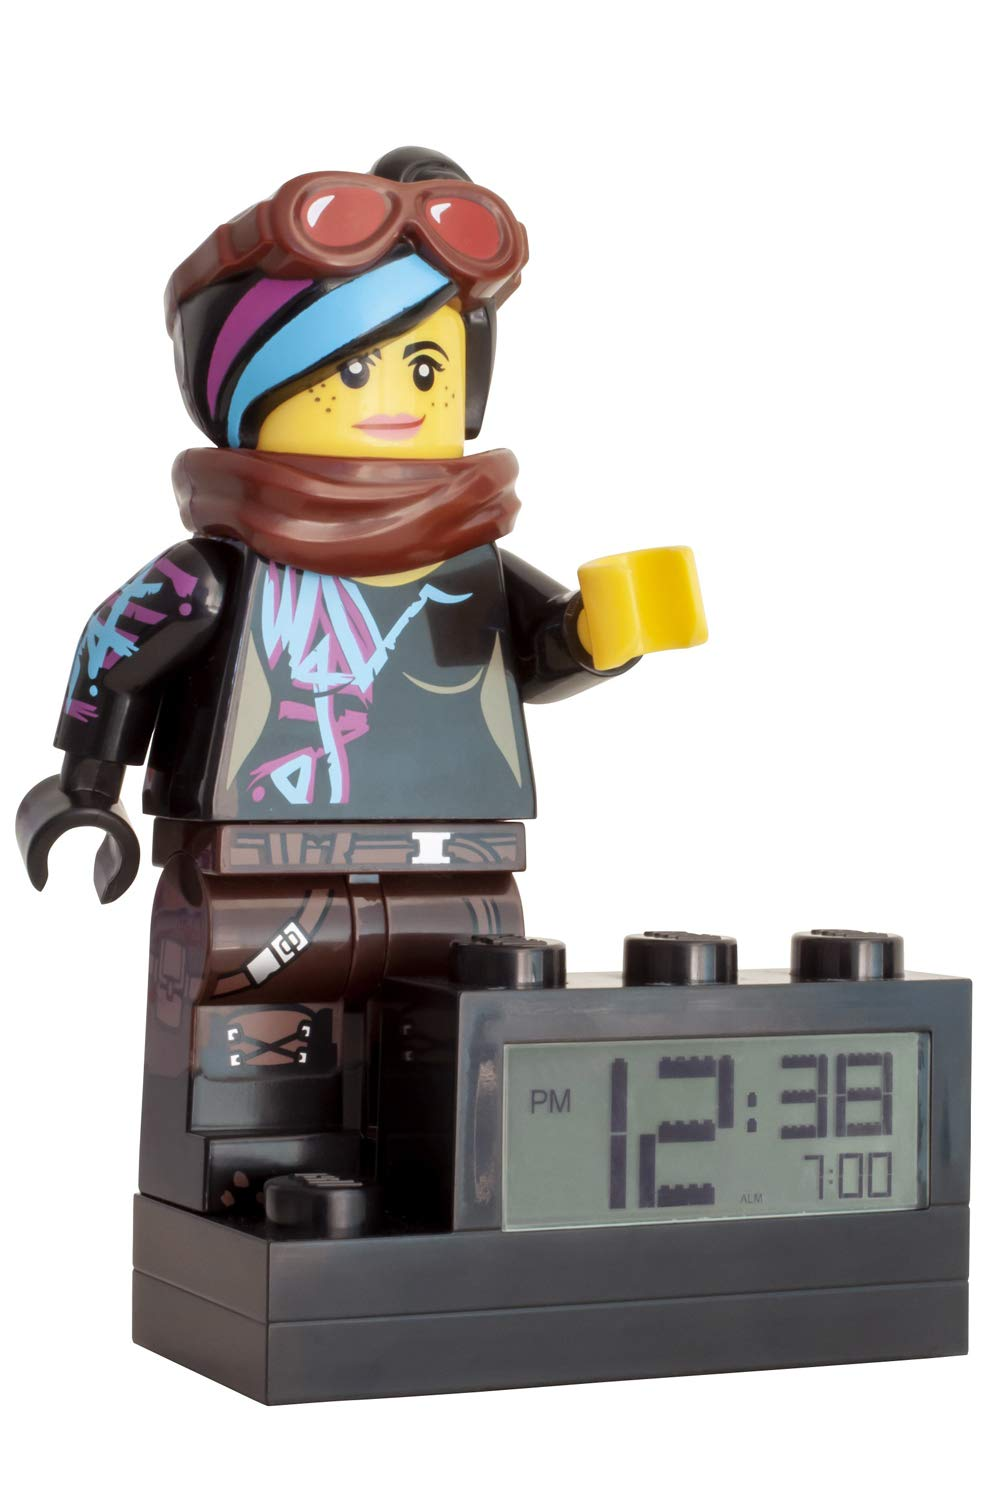 ClicTime 9003974 Kids Minifigure Light Up colour | plastic | 9.5 inches tall | LCD display | boy girl | official Lego Movie 2 Wyldstyle Alarm Clock